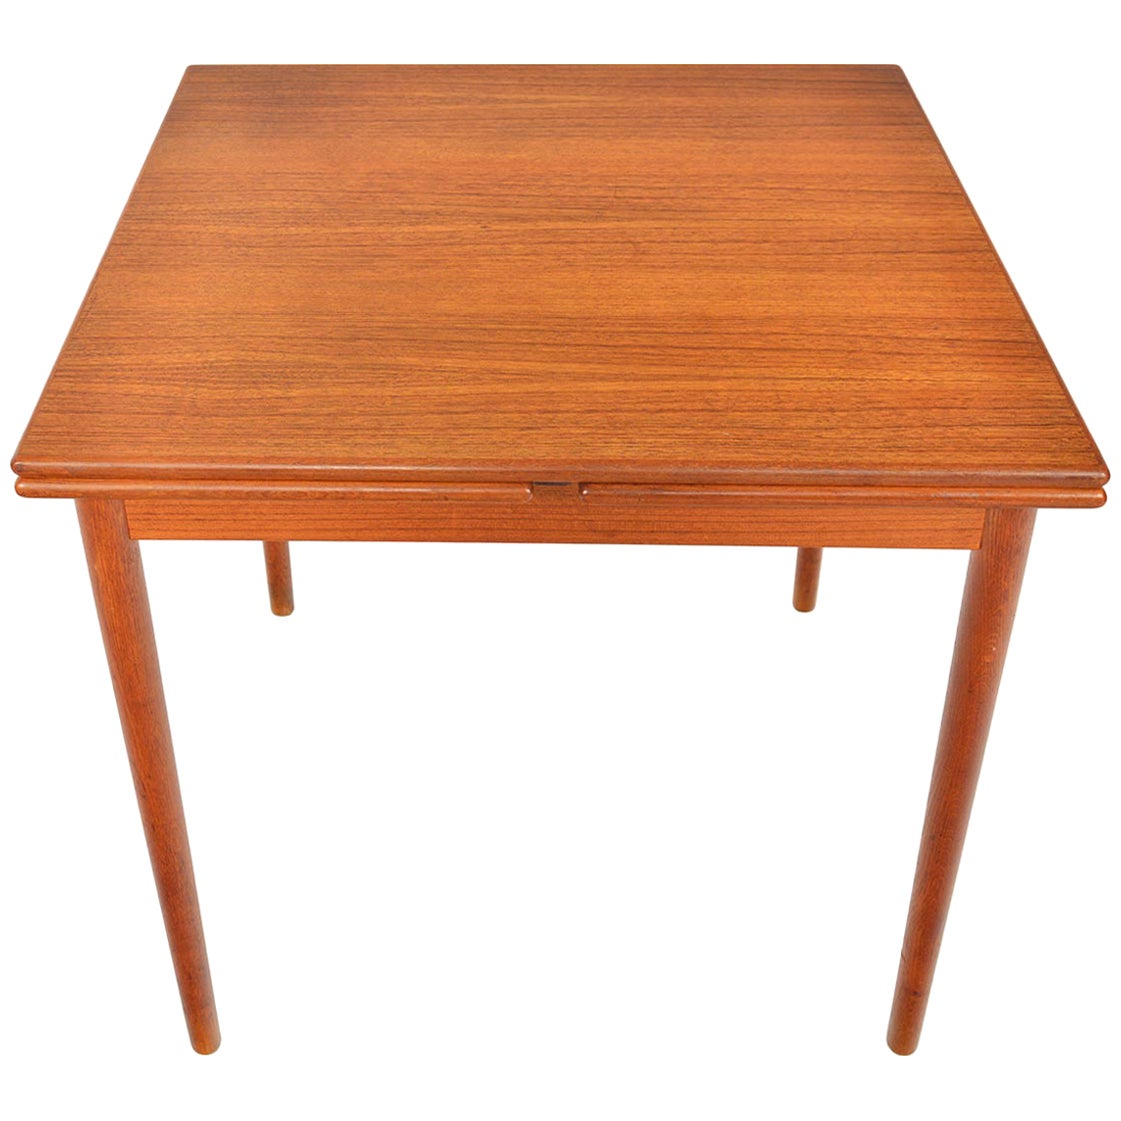 Danish Modern Square Teak Draw Leaf Dining Table